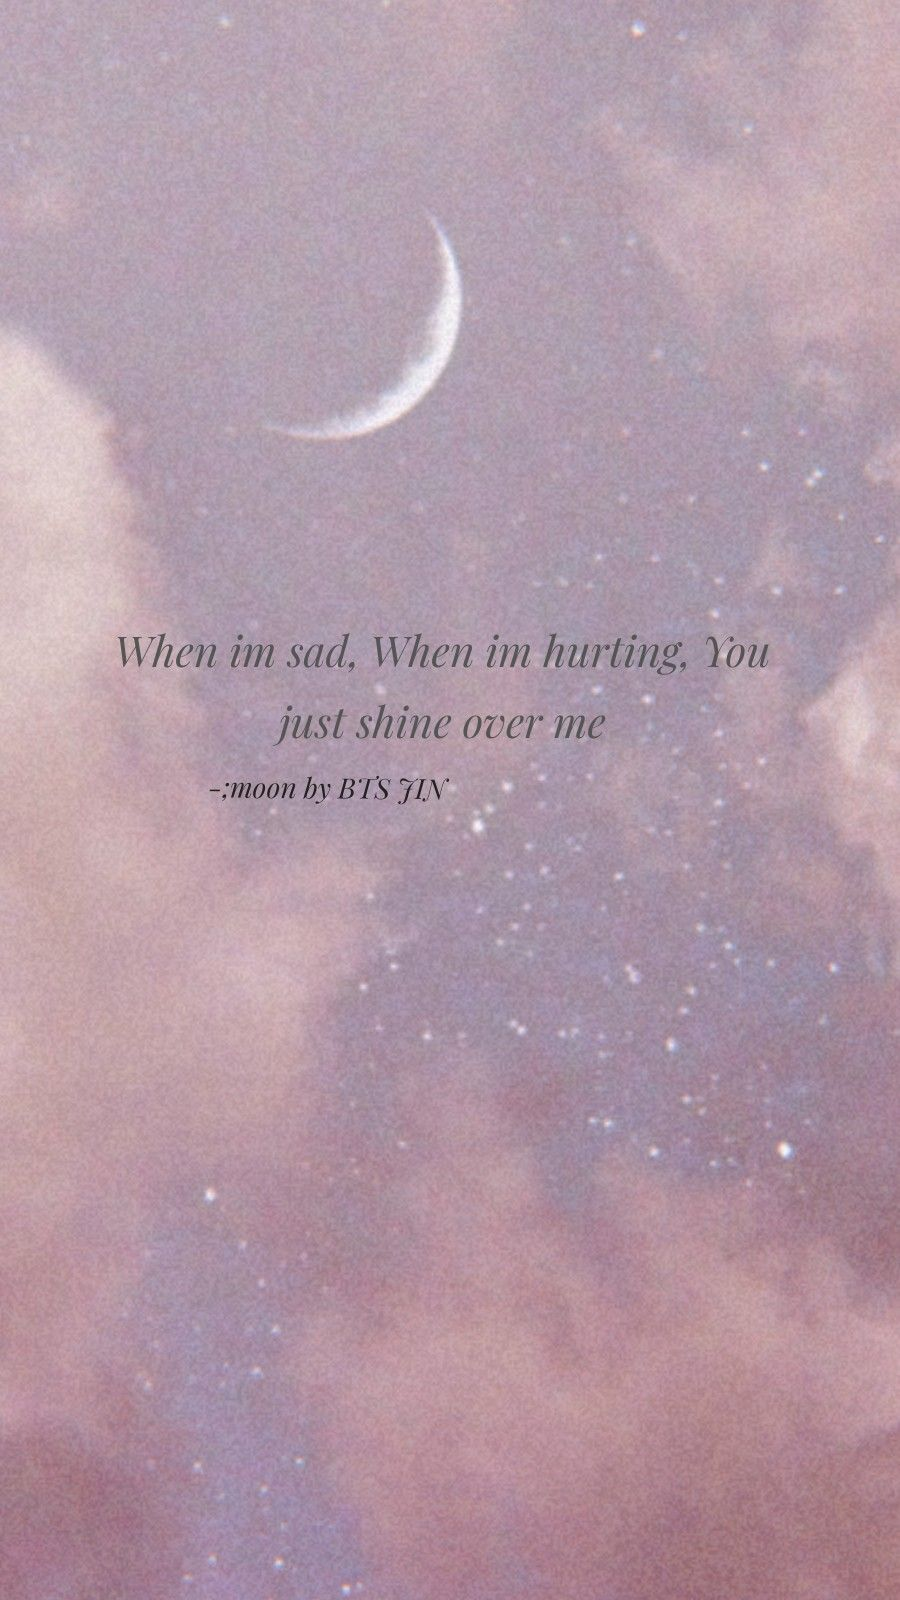 Moon By Bts Jin In 2020 Bts Lyrics Quotes Bts Wallpaper Lyrics Moon And Star Quotes